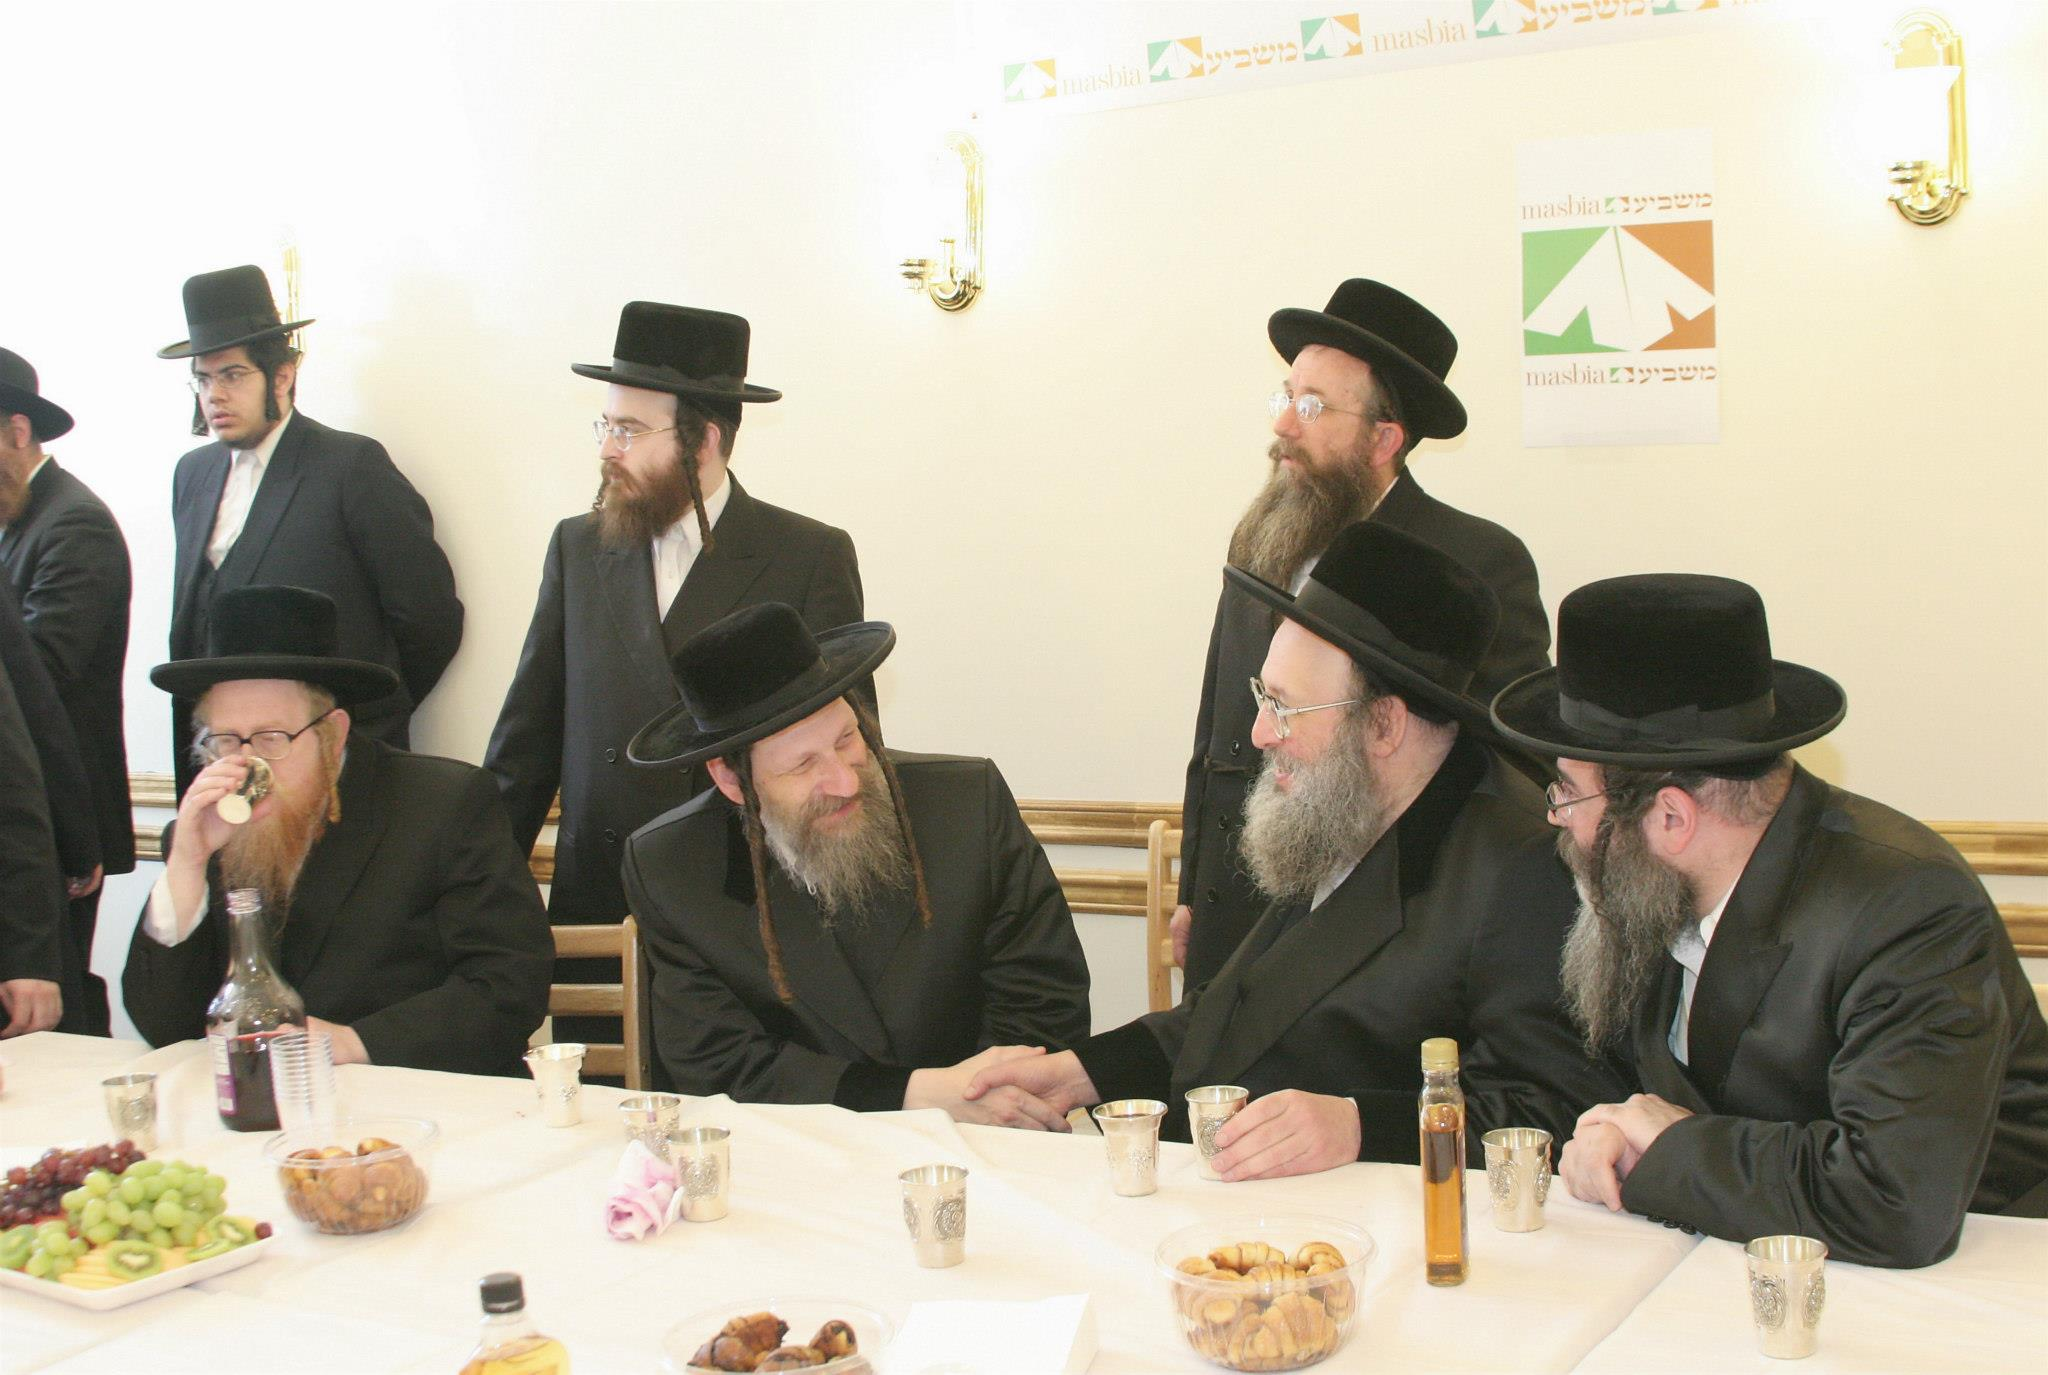 Masbia Supporter, Borshtiner Rebbe, Rabbi David Eichenstein at Inaugural Reception for Masbia